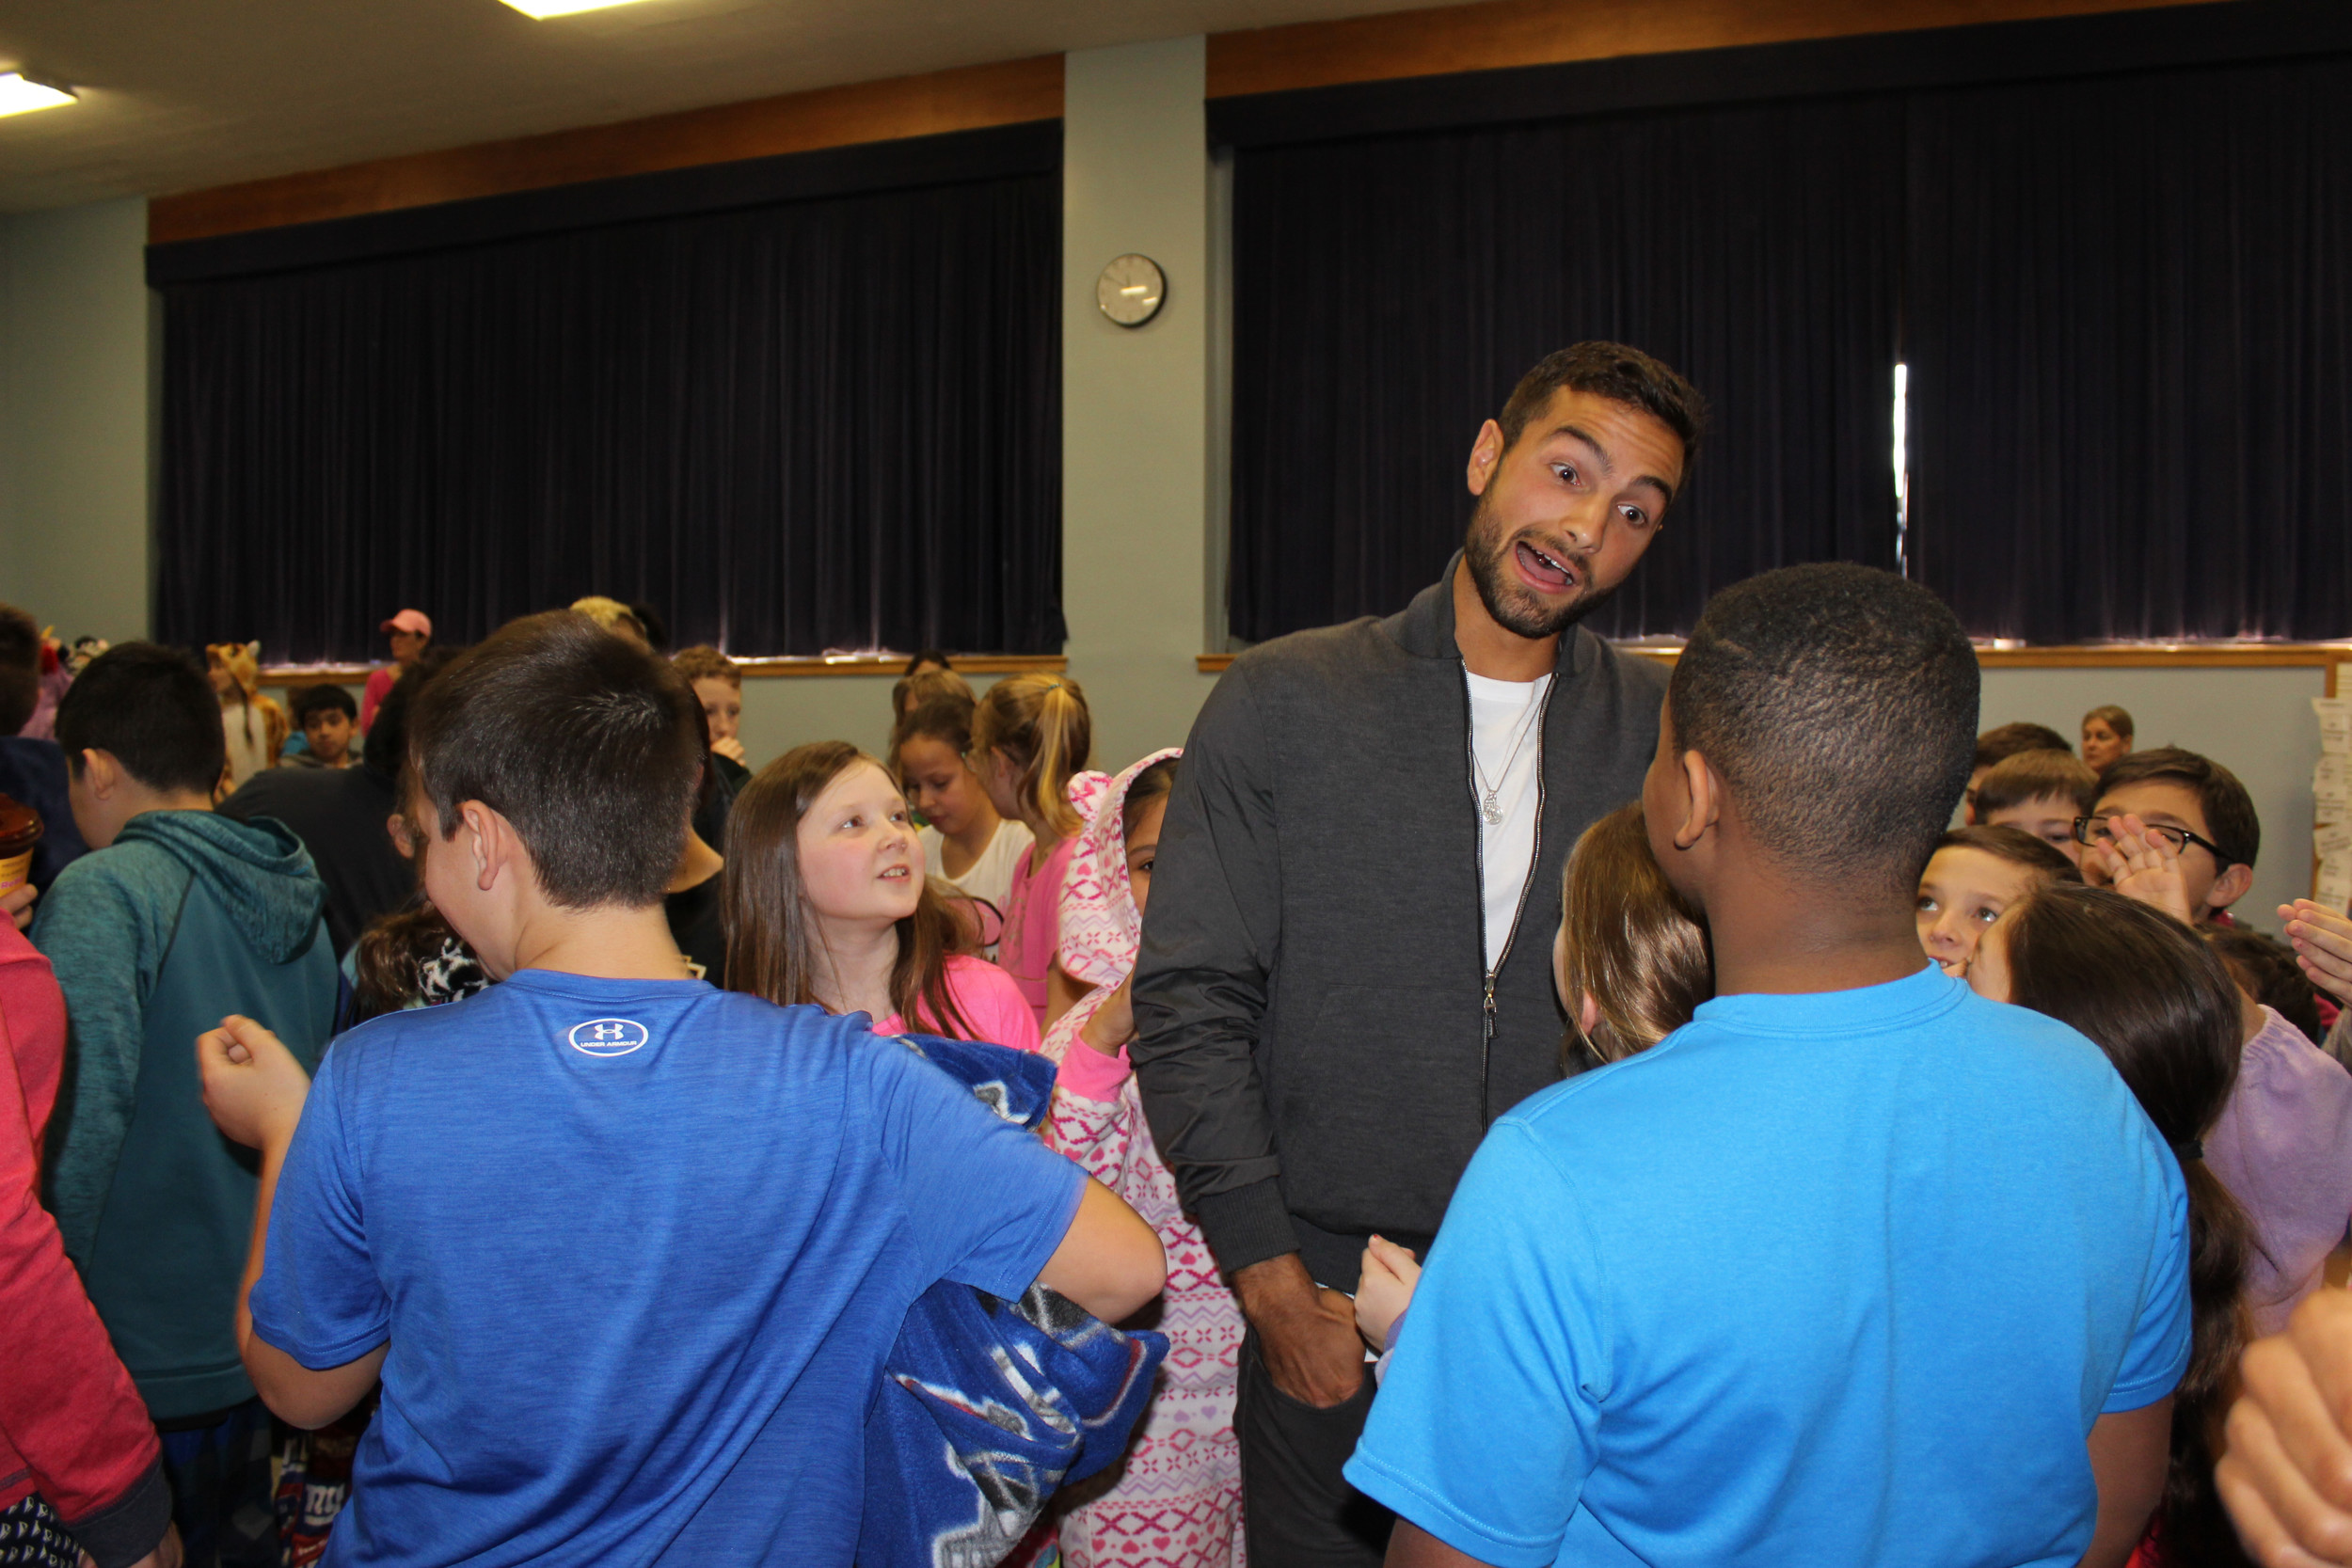 Noah Rubin shared stories and memories with fourth- and fifth-grade students at Covert Elementary School in Rockville Centre.